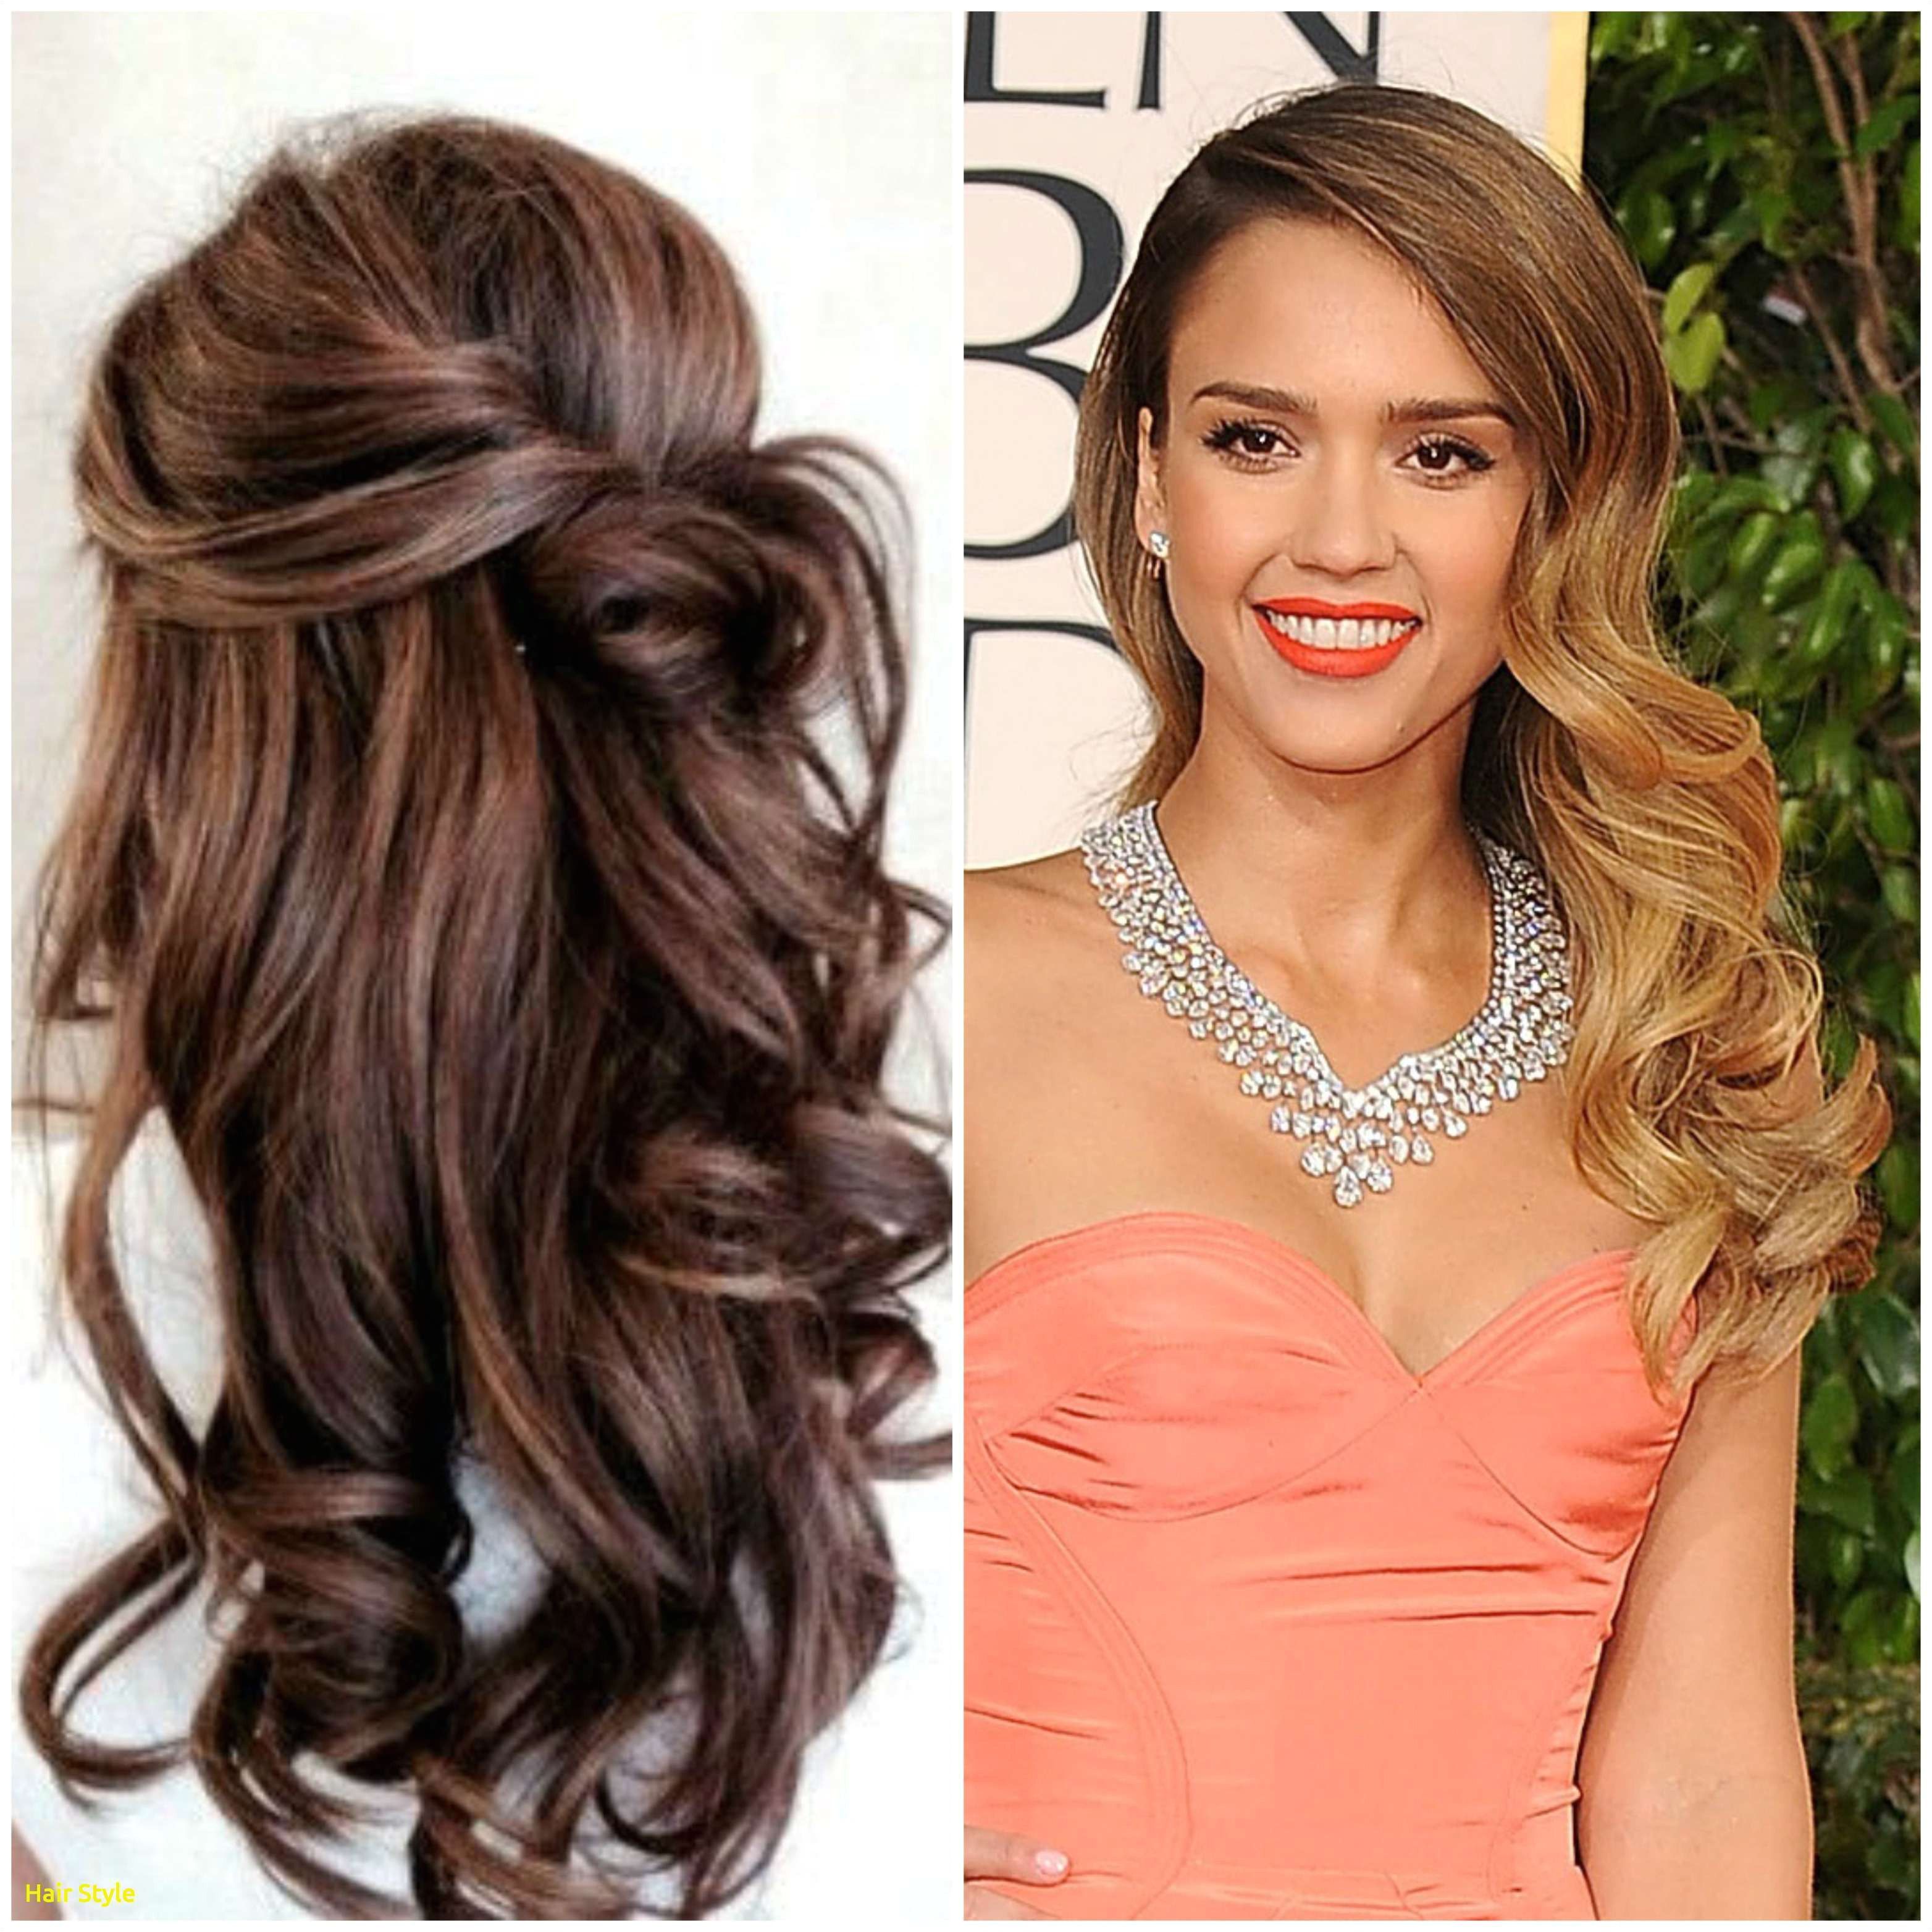 Hairstyles for Women Long Hair 2019 16 Best Hair Color 2019 Fall Image